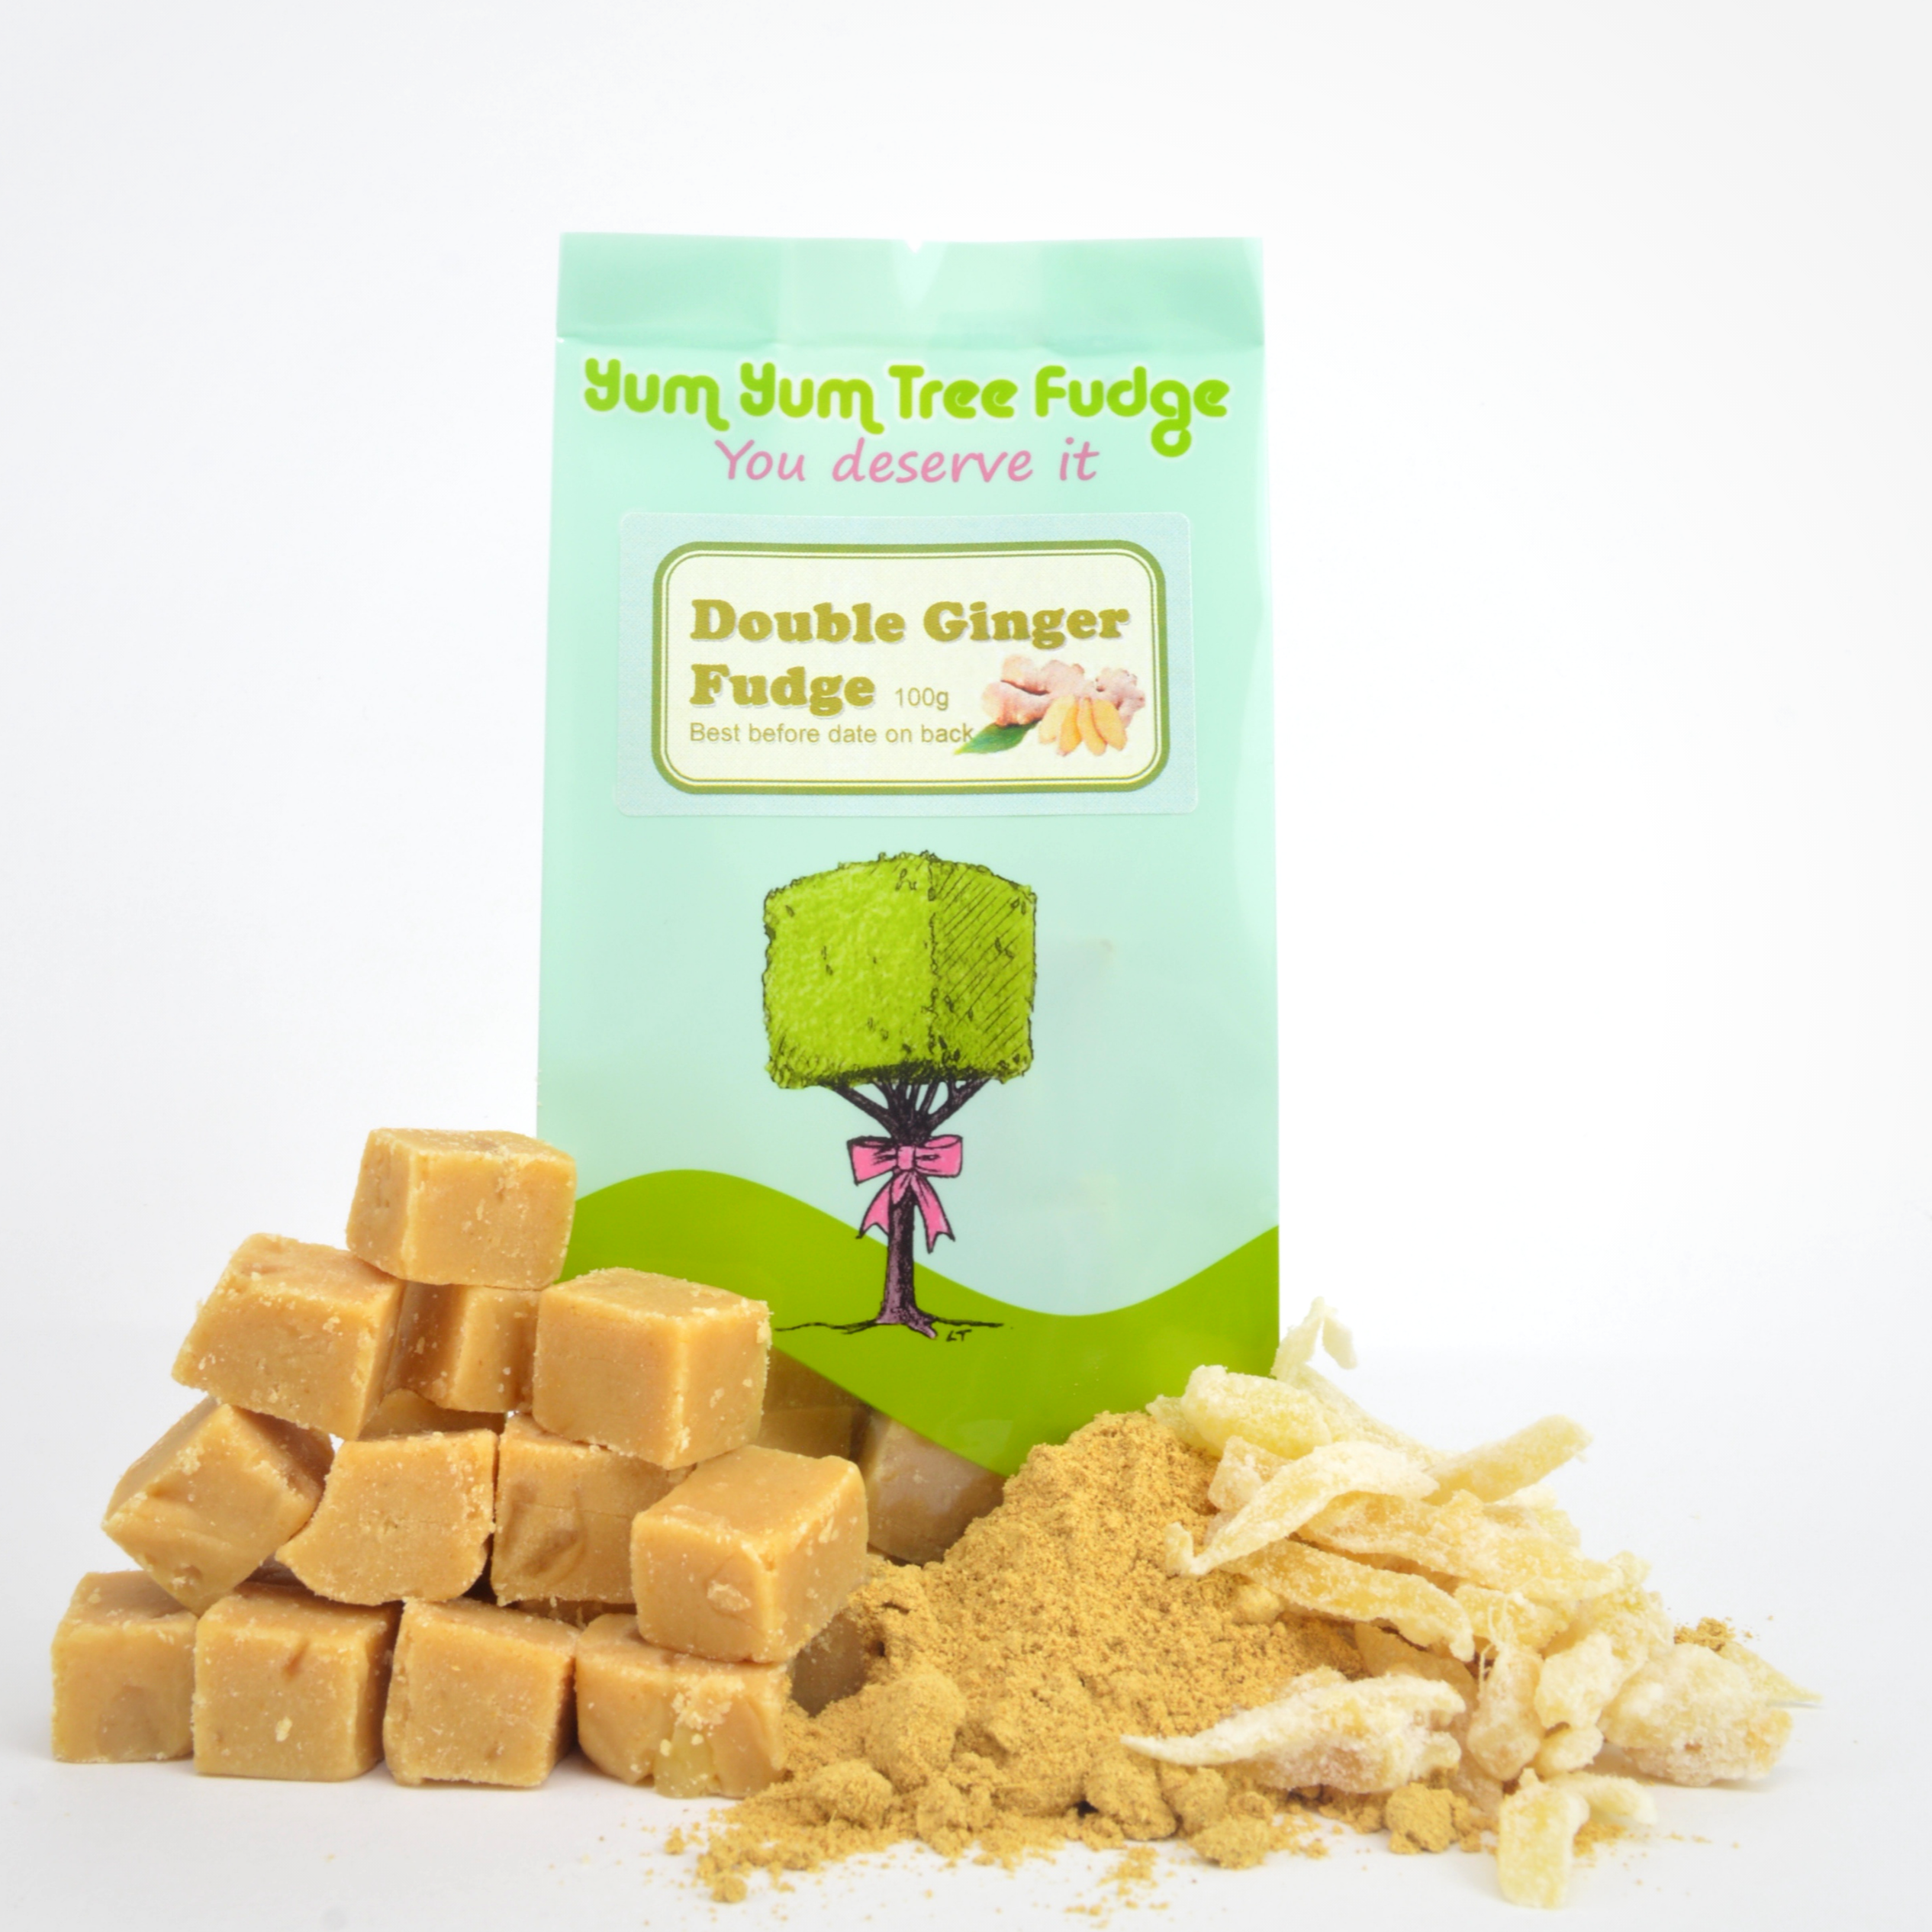 Double Ginger Fudge by Yum Yum Tree Fudge